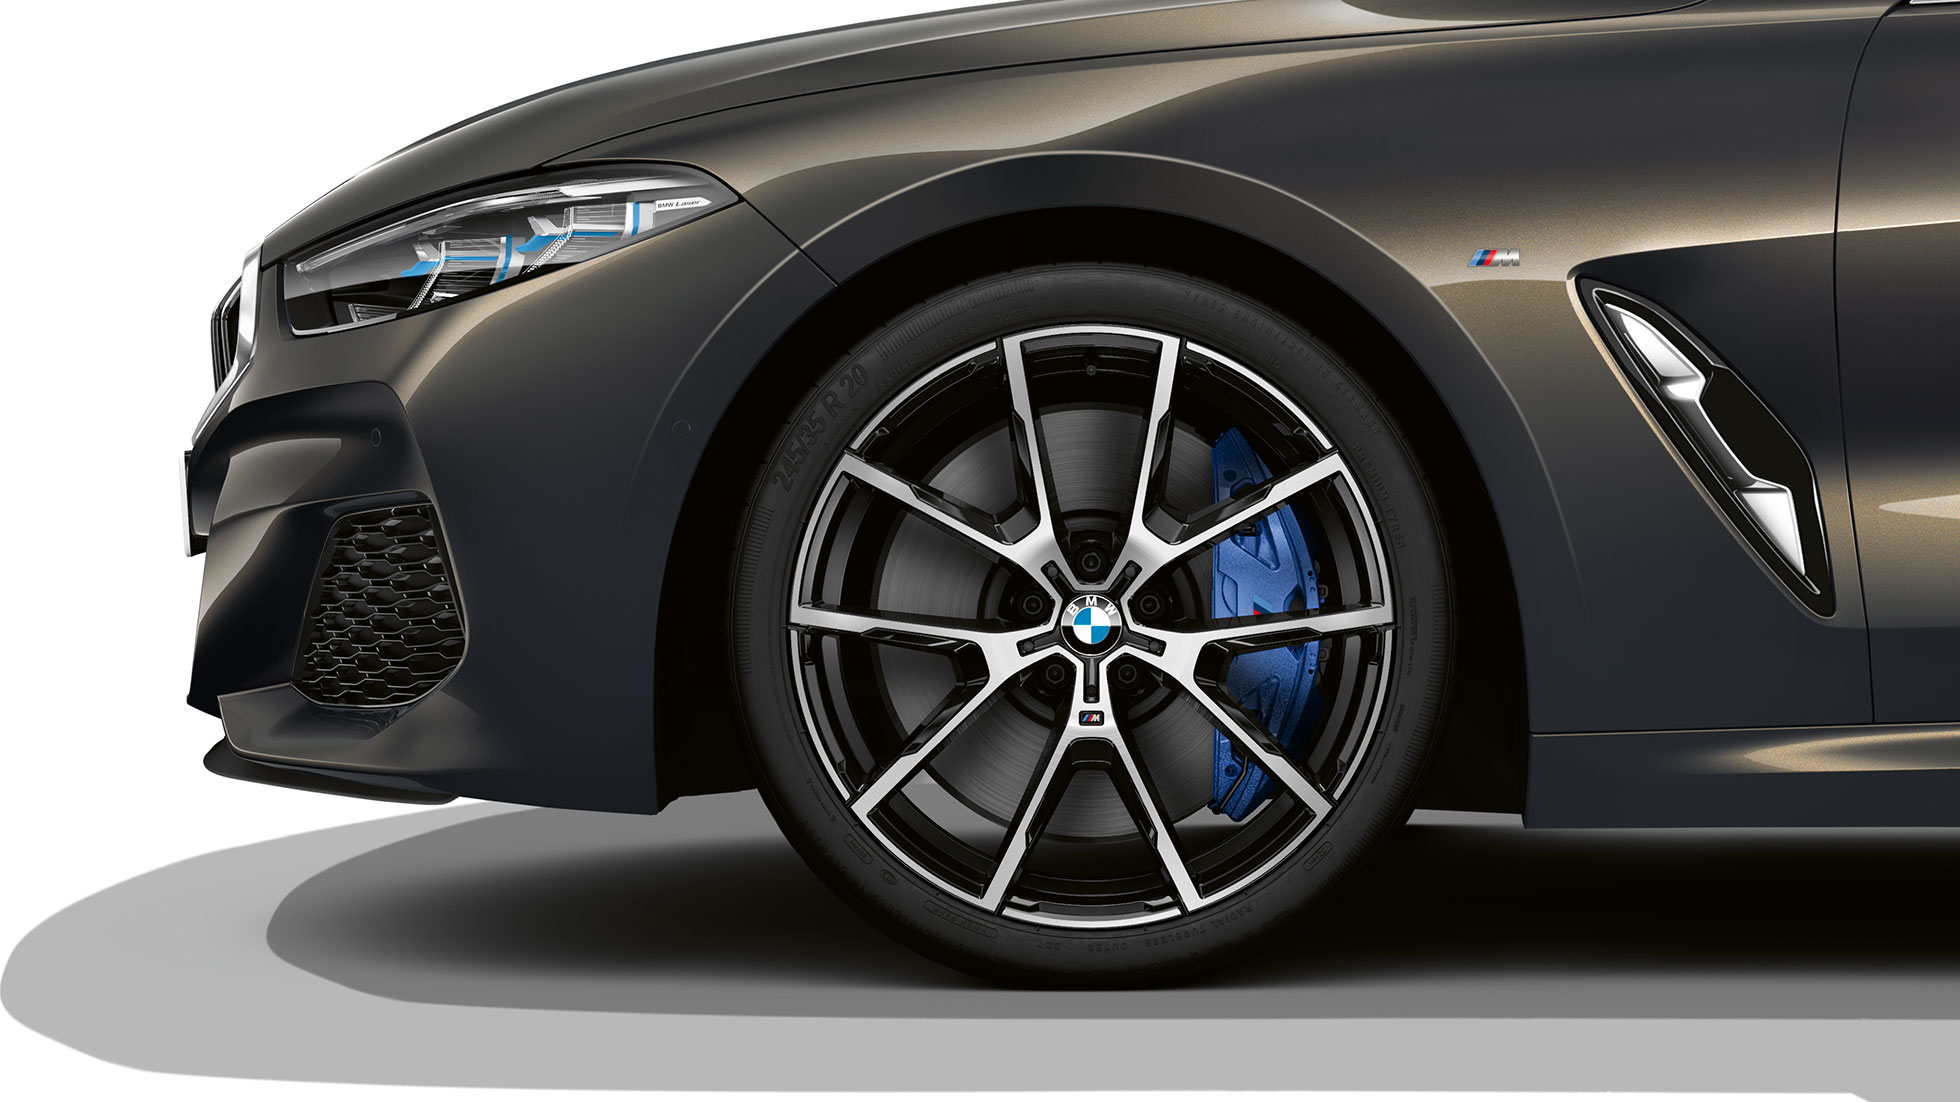 BMW M850i xDrive in Dravitgrau metallic, 20-inch lichtmetalen M wielen in Y-spaak styling 728 M.